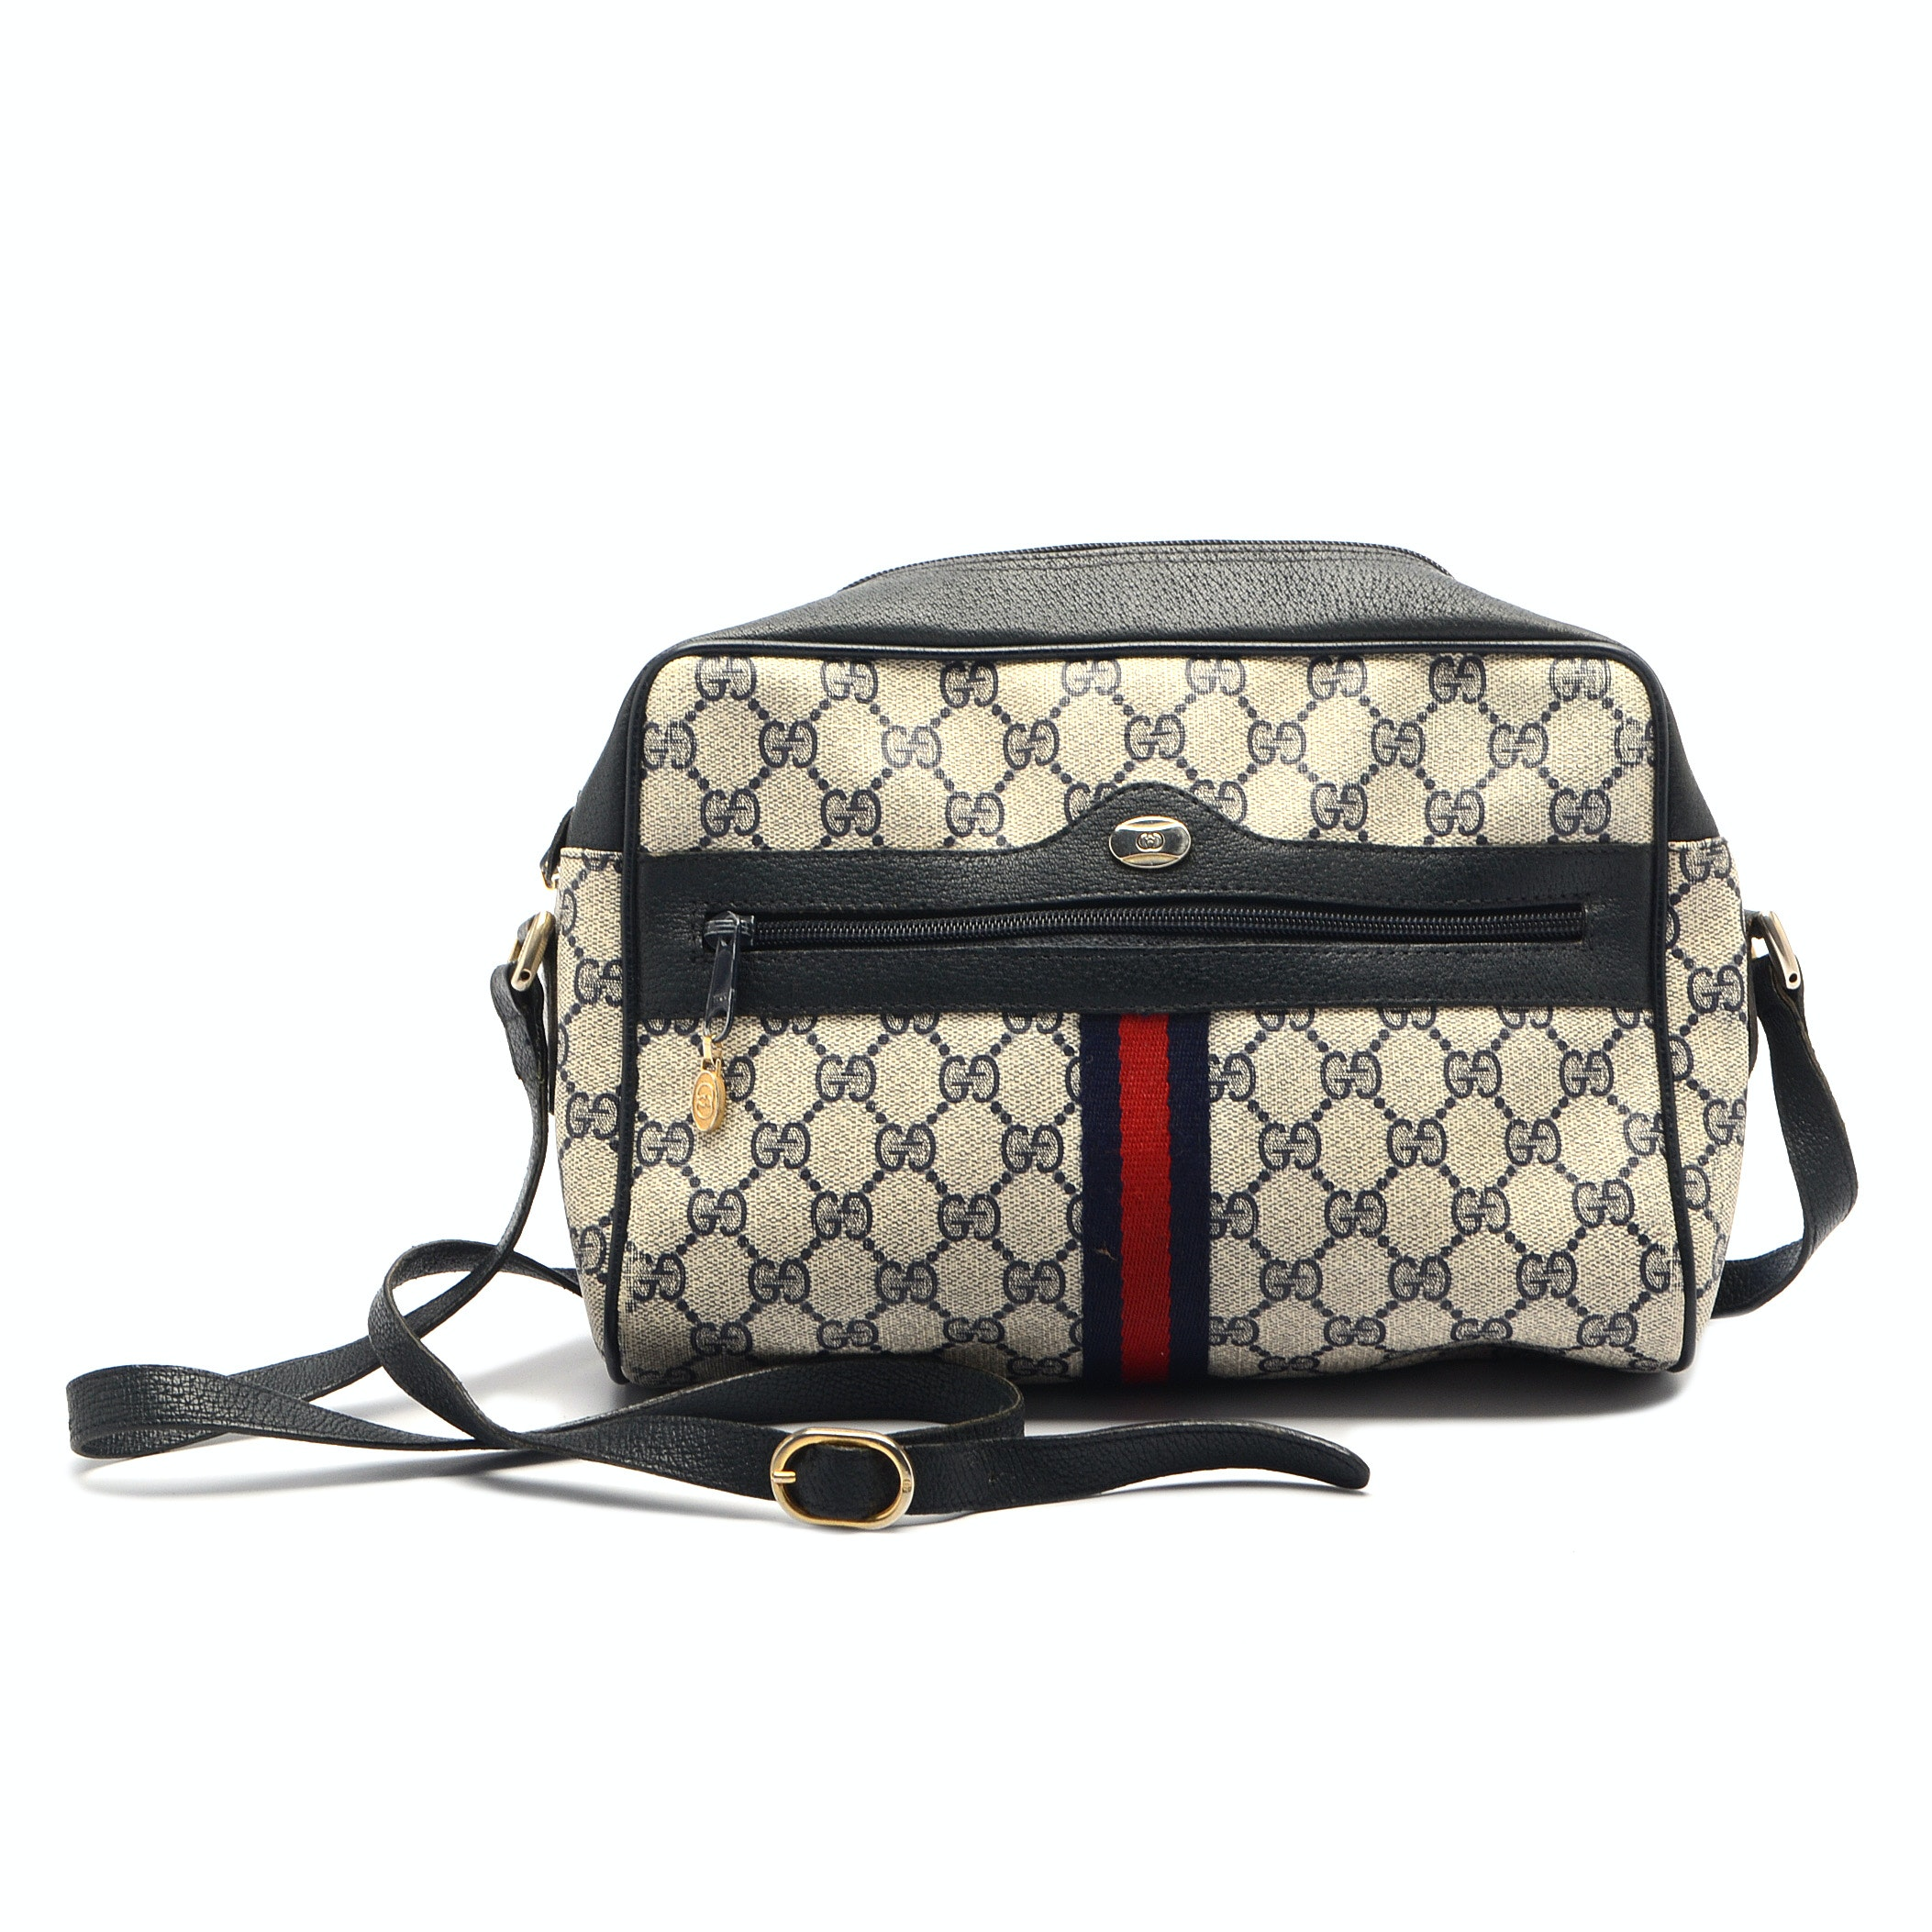 Vintage Gucci Accessory Collection GG Canvas and Leather Handbag